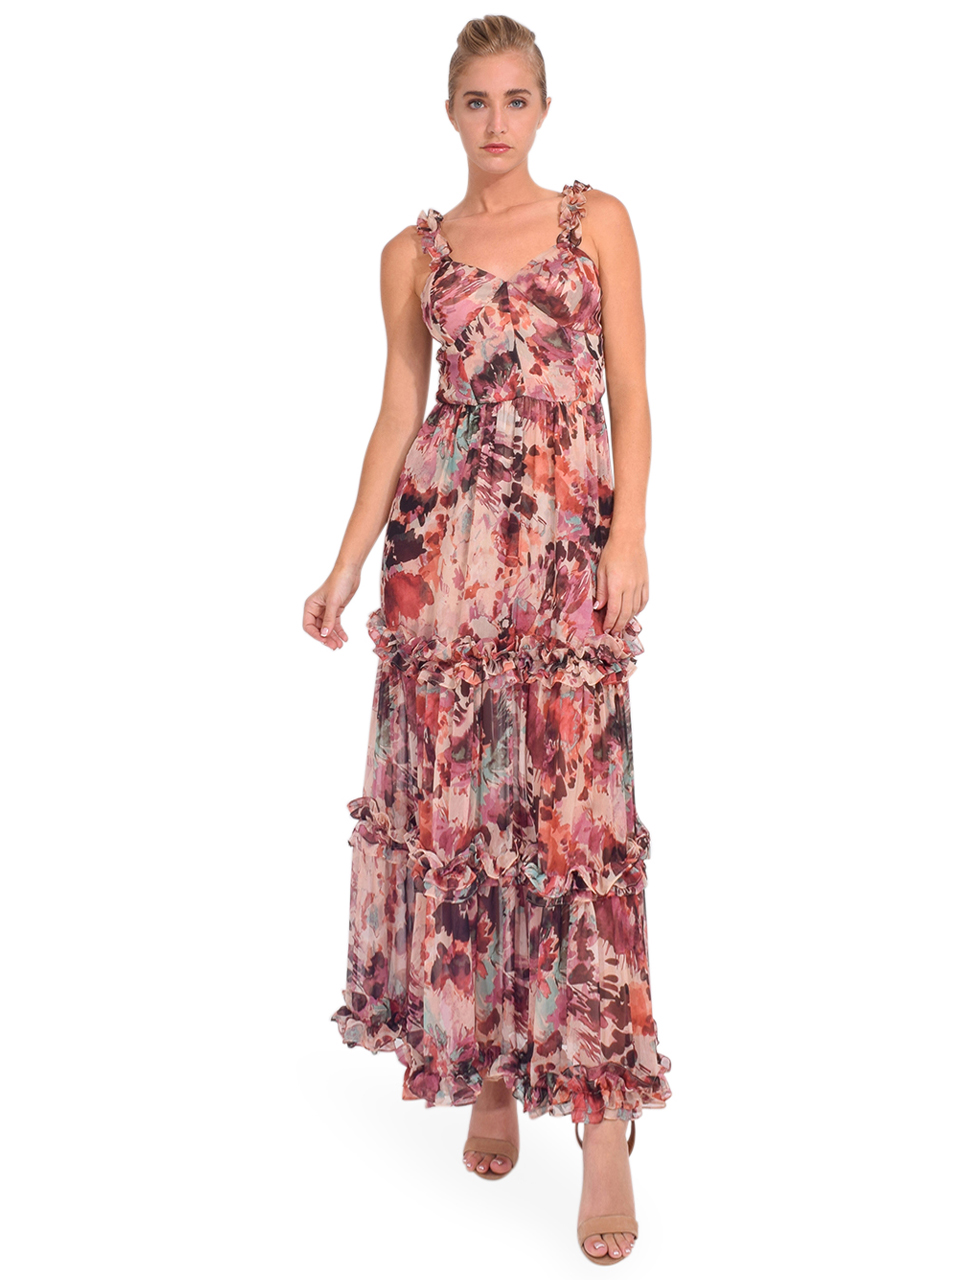 MISA Avery Maxi Dress in Floradream Straps on Shoulder Front View